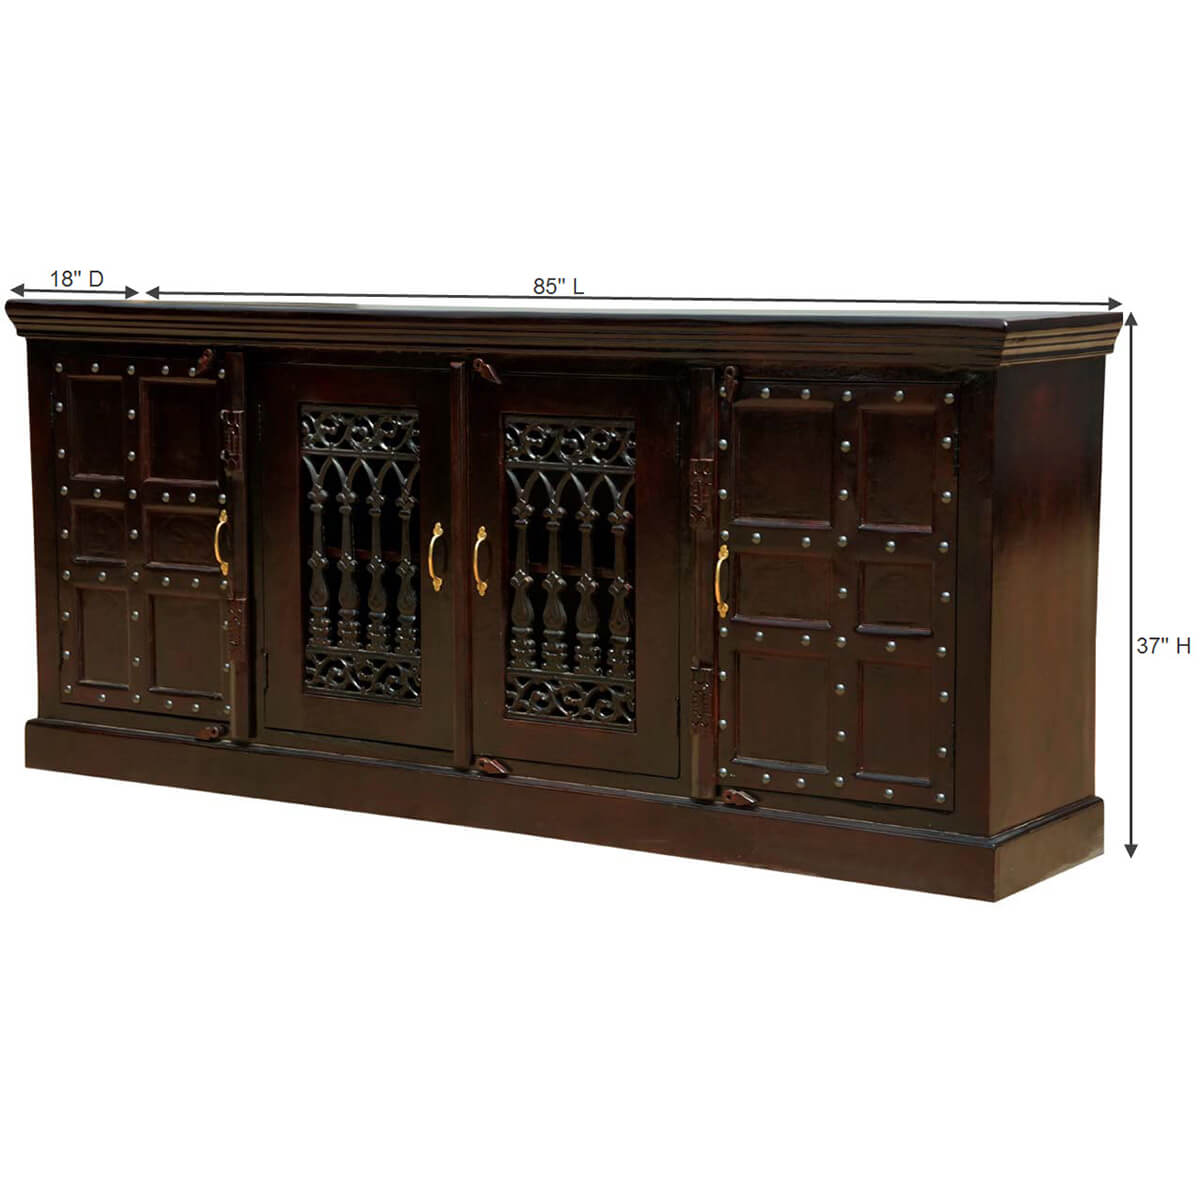 Arrivals Nottingham Classic Mango Wood 85 Sideboard Buffet Cabinet. Full resolution‎  file, nominally Width 1200 Height 1200 pixels, file with #B48317.